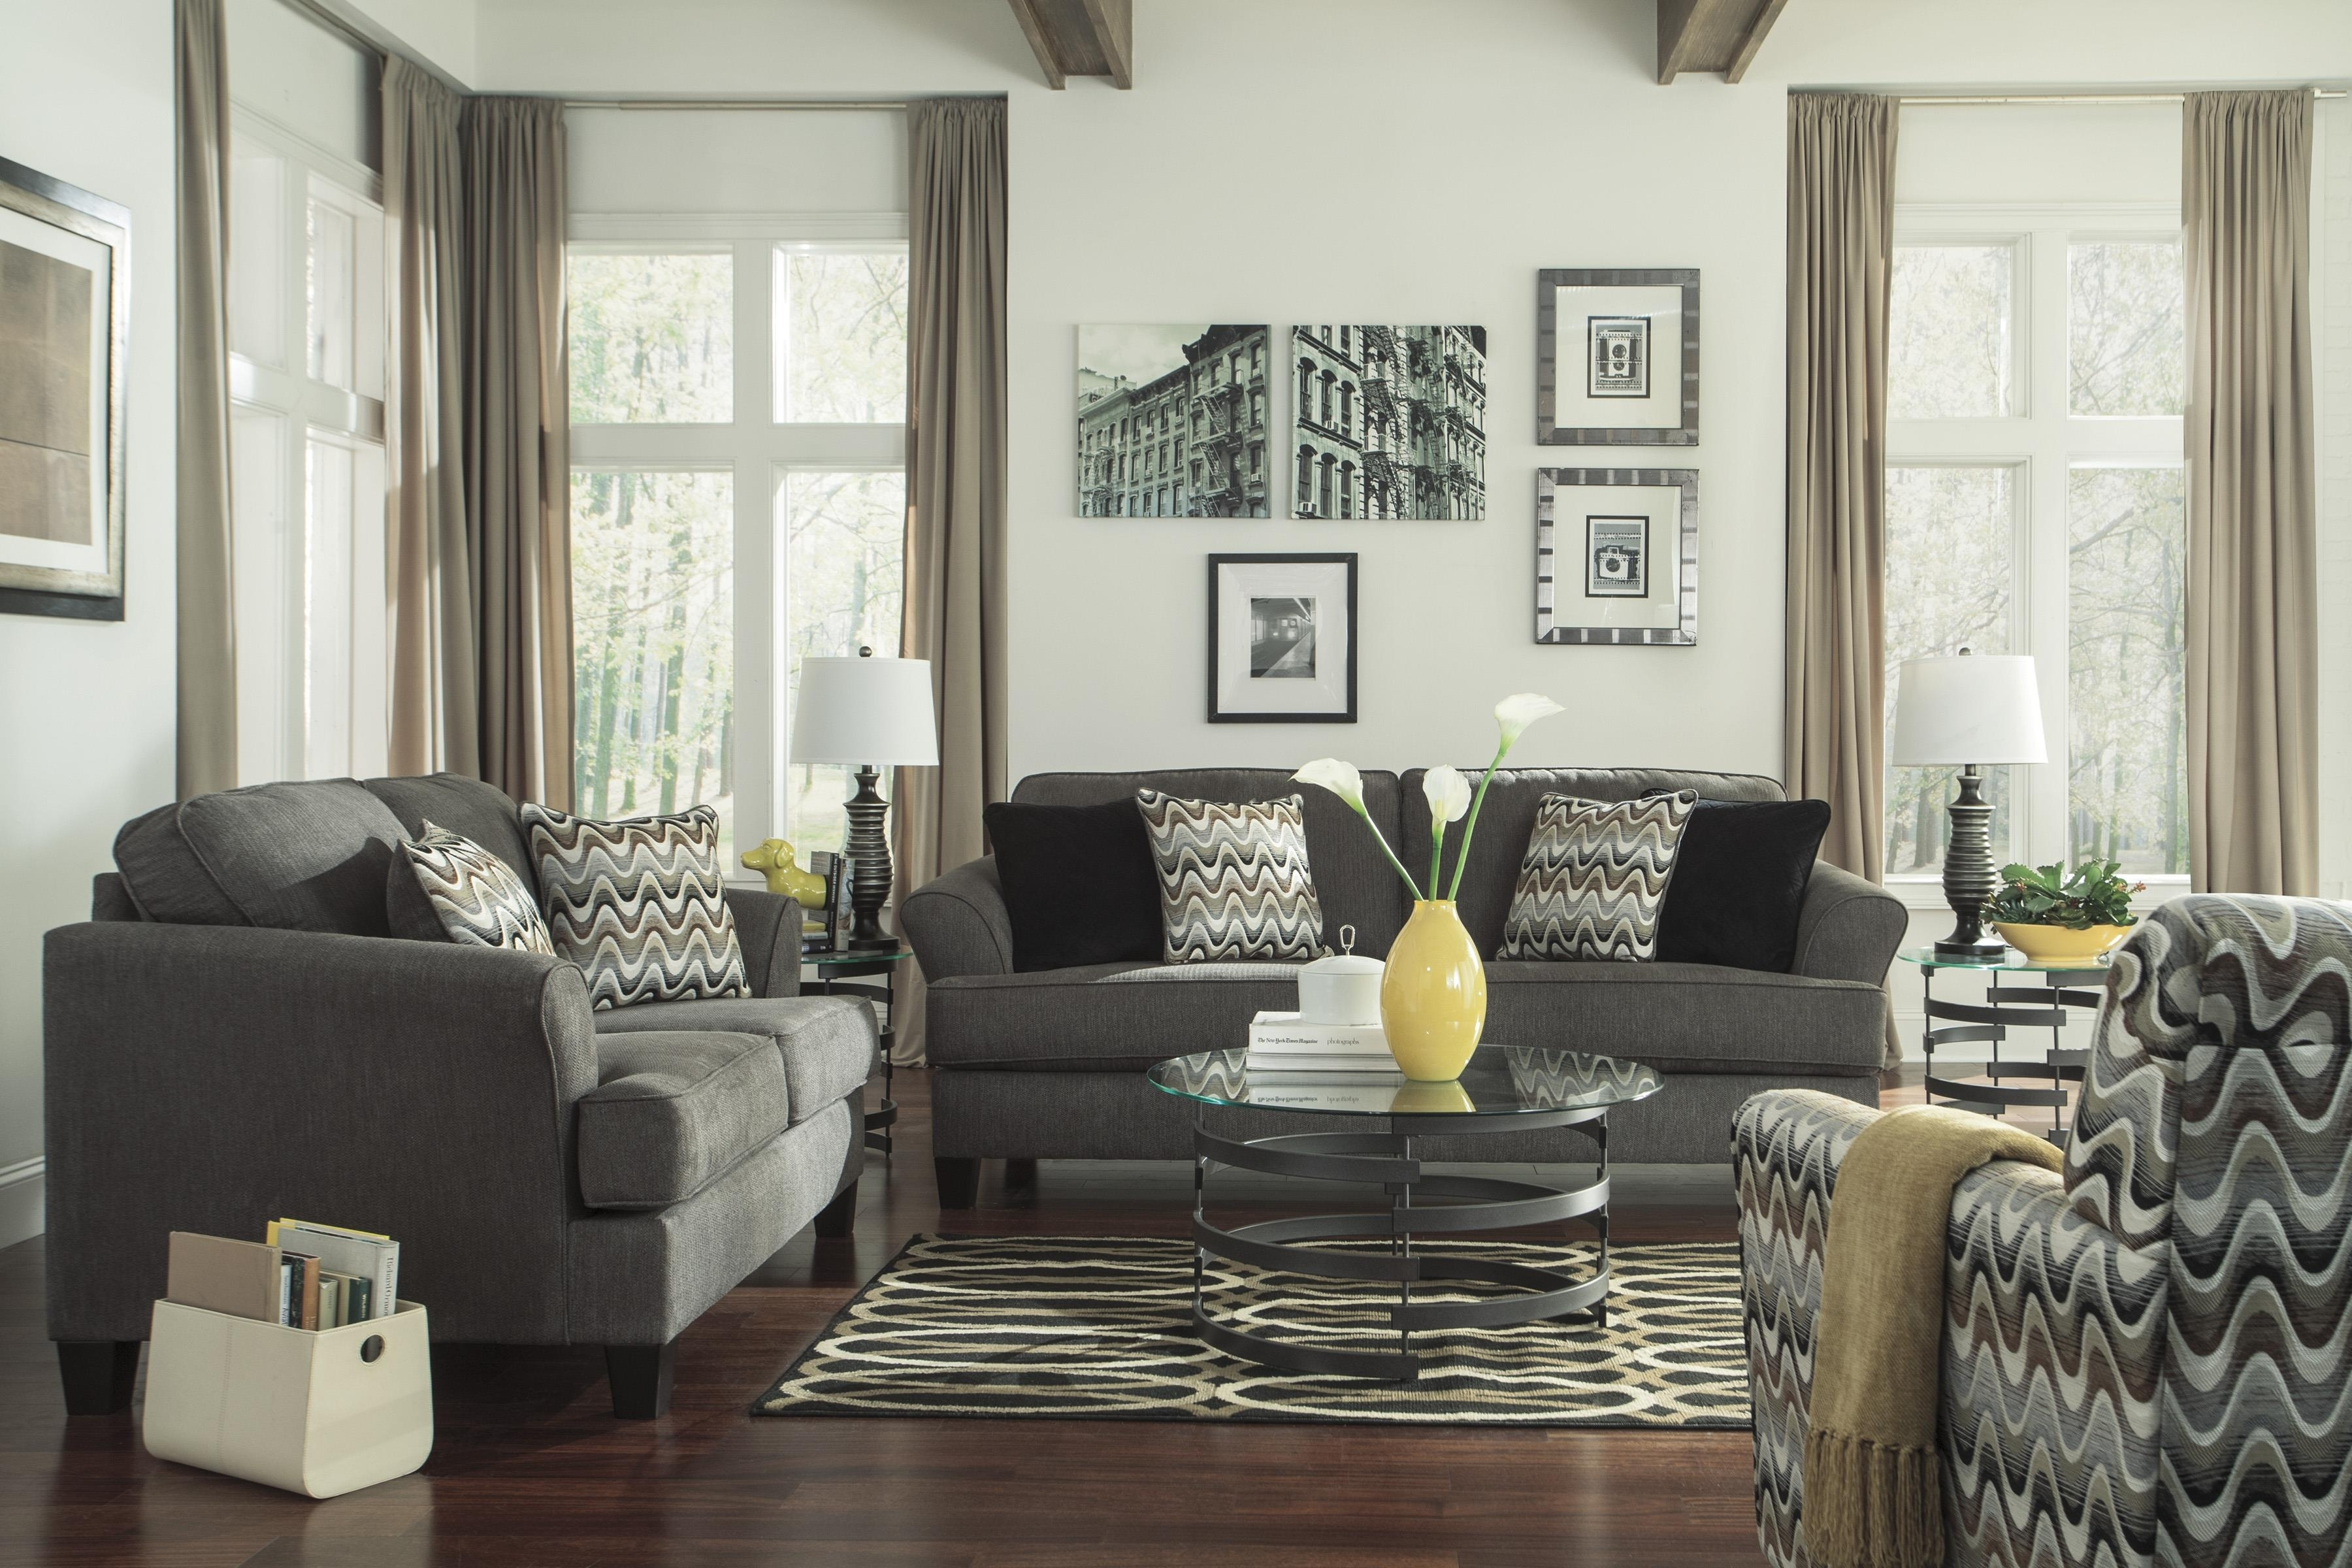 Benchcraft Gayler Contemporary Sofa | Wayside Furniture | Sofa In Sofa And Accent Chair Sets (Image 4 of 10)